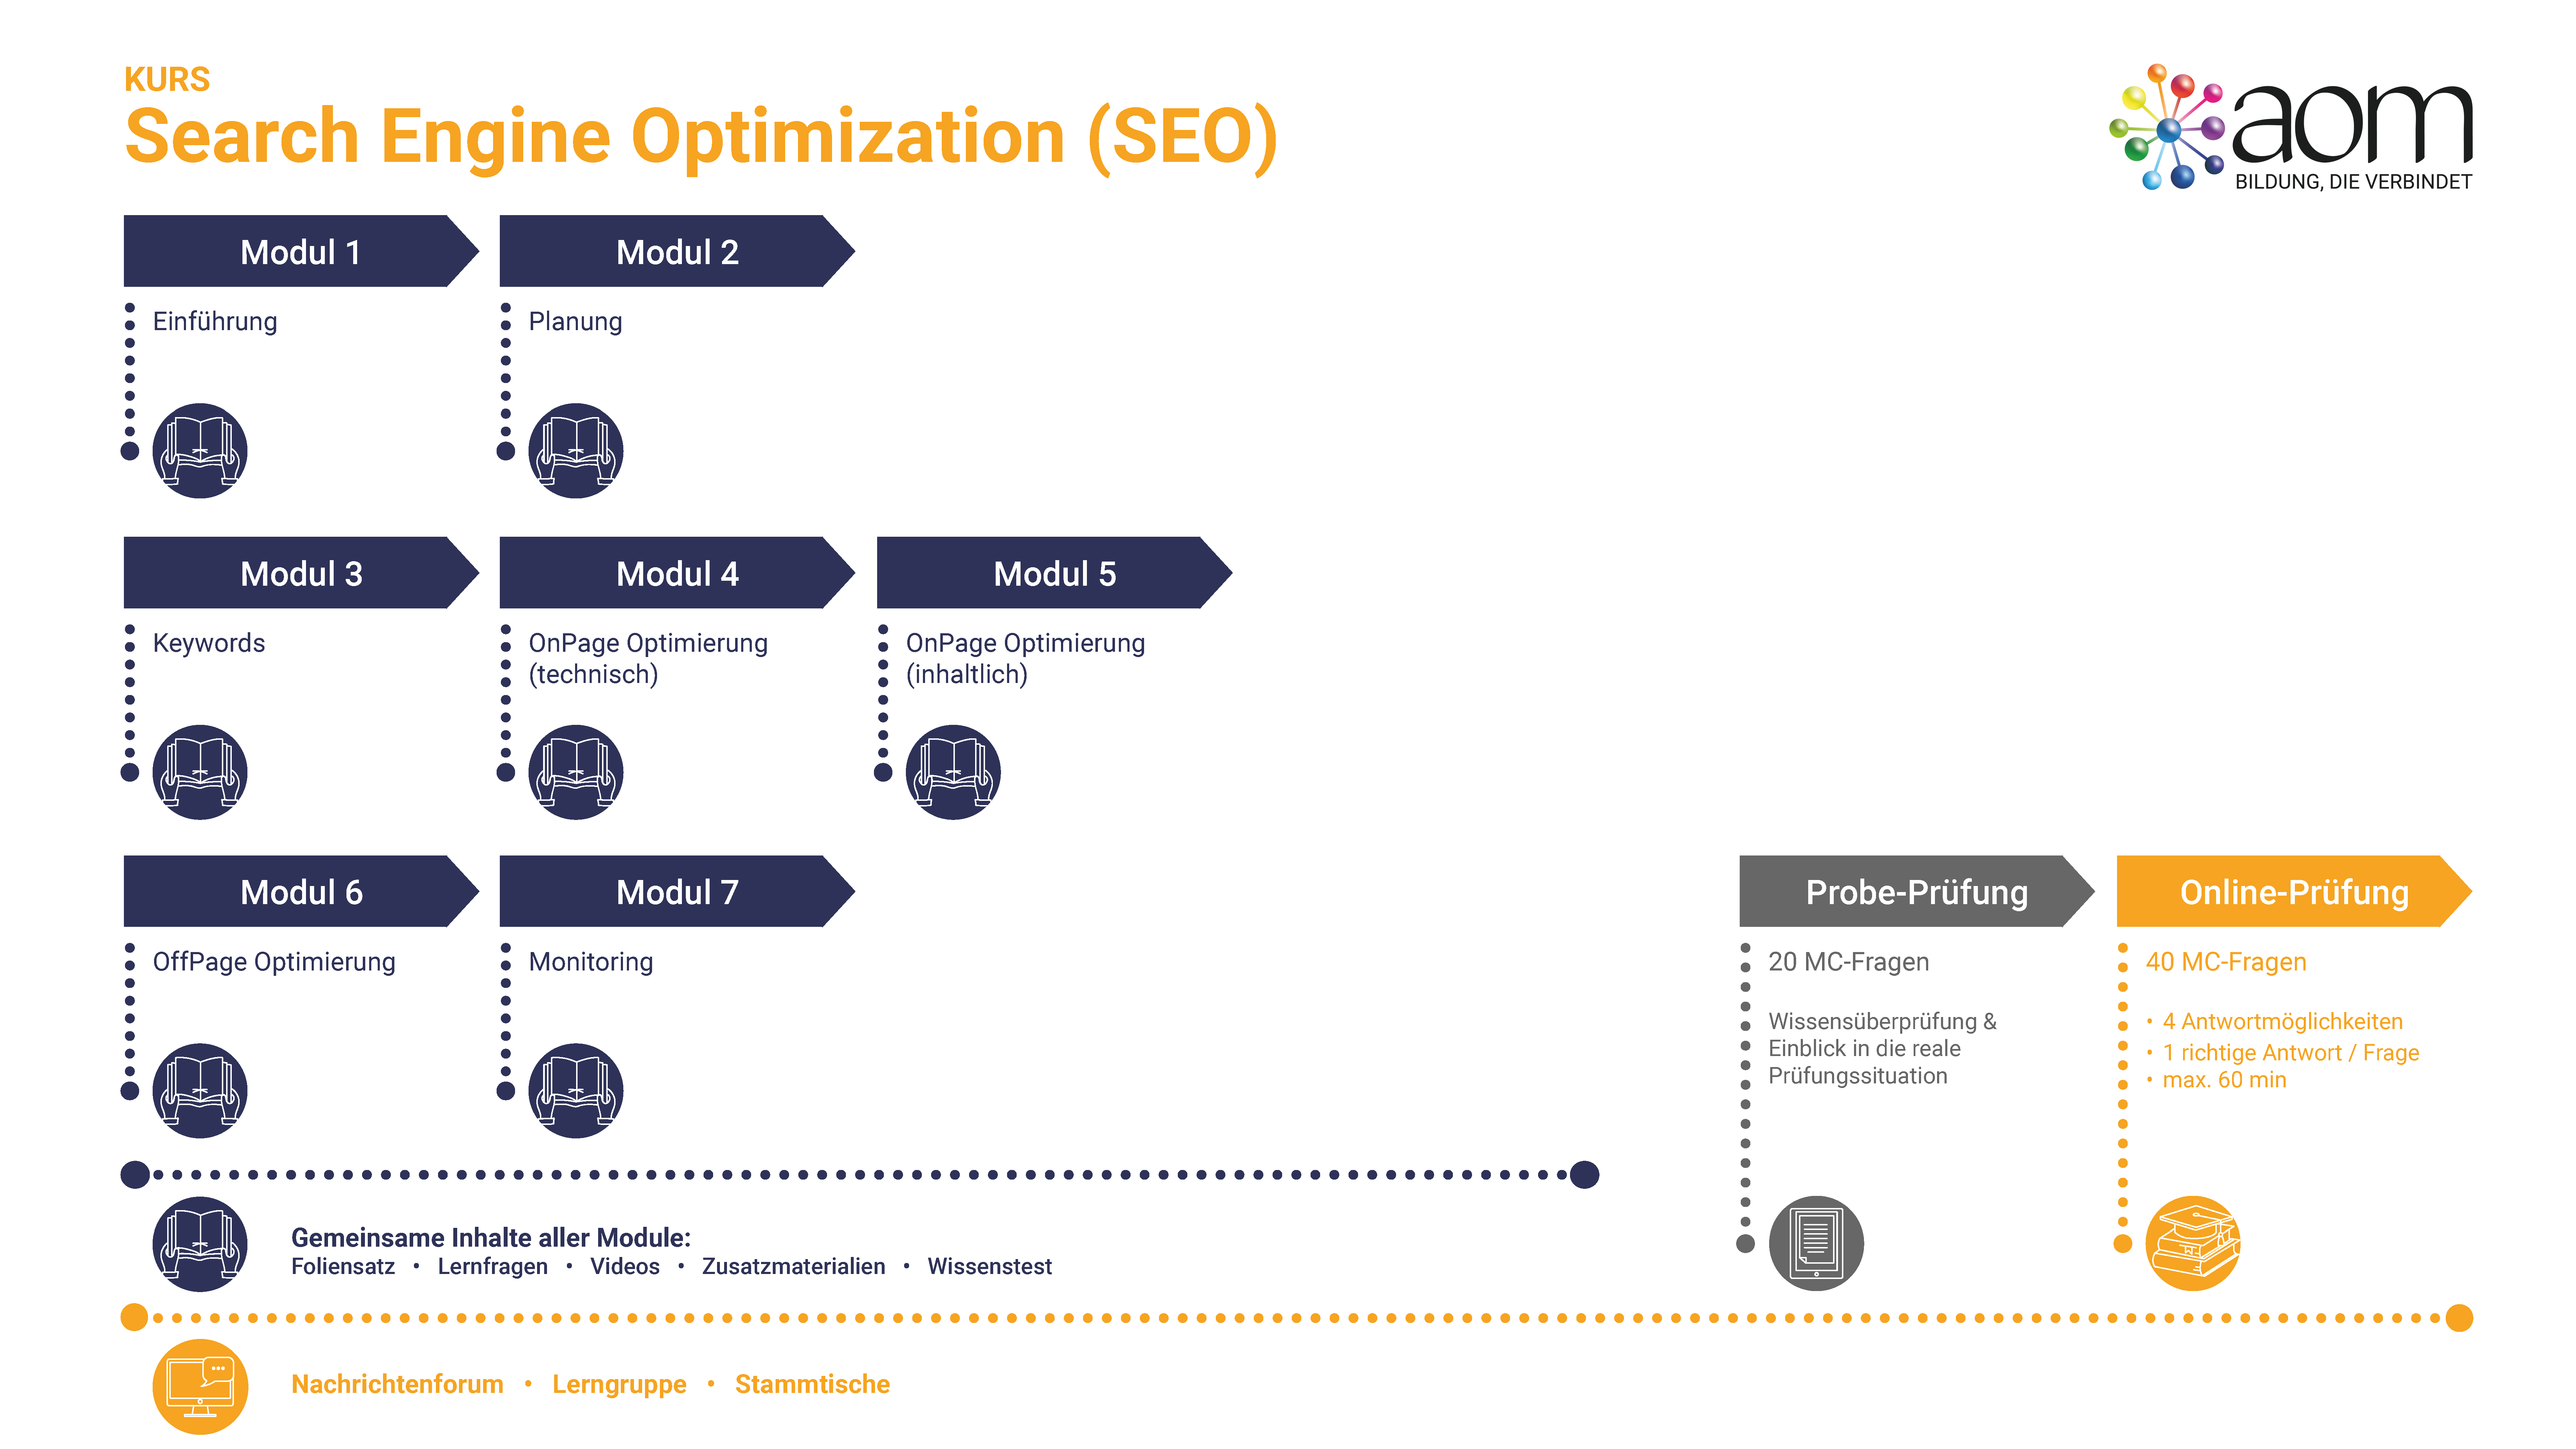 Learner Journey Seach Engine Optimization